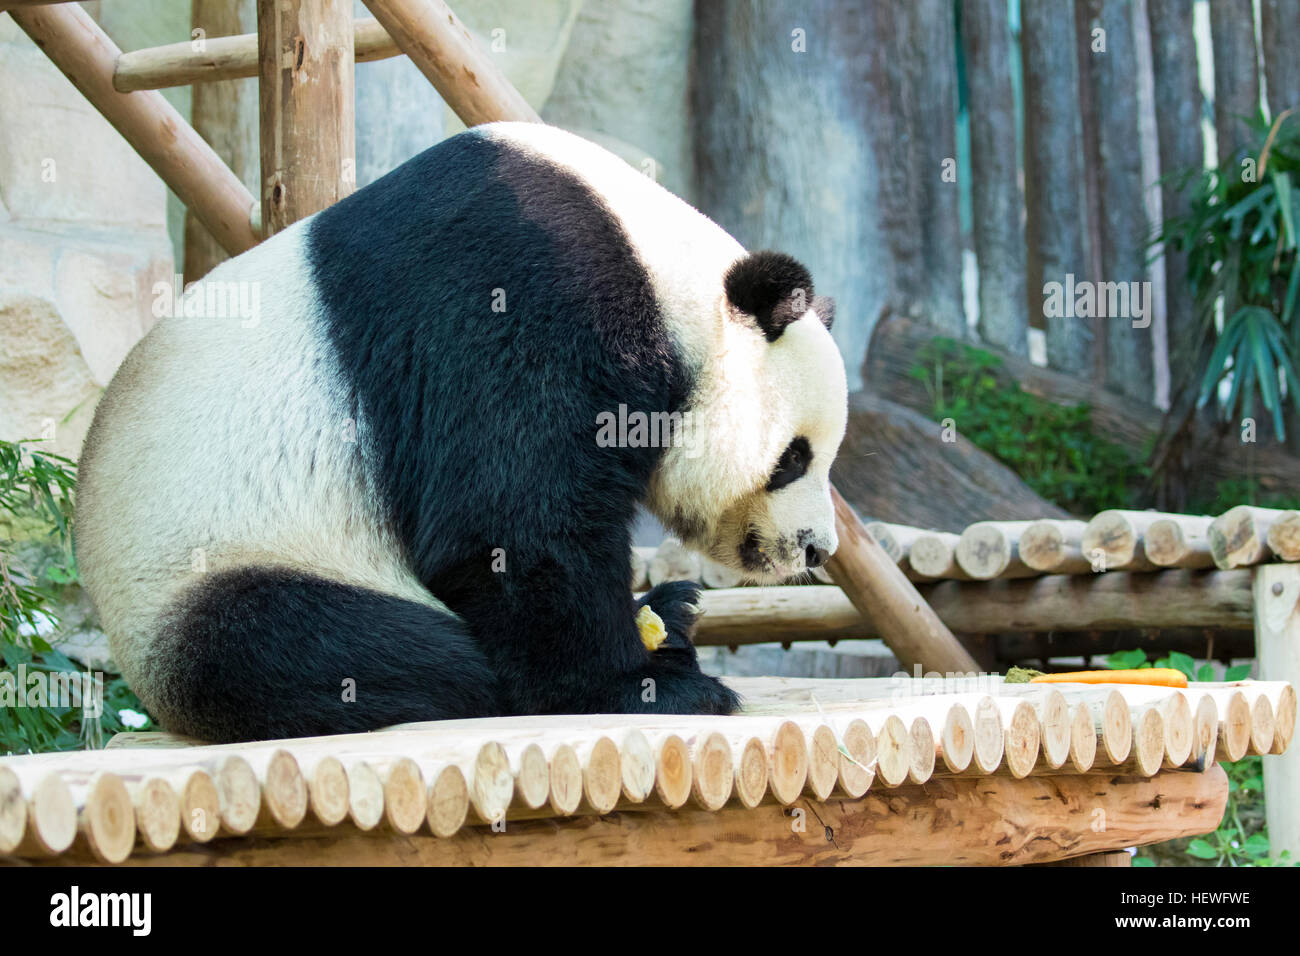 Image of a panda on nature background. Wild Animals. - Stock Image